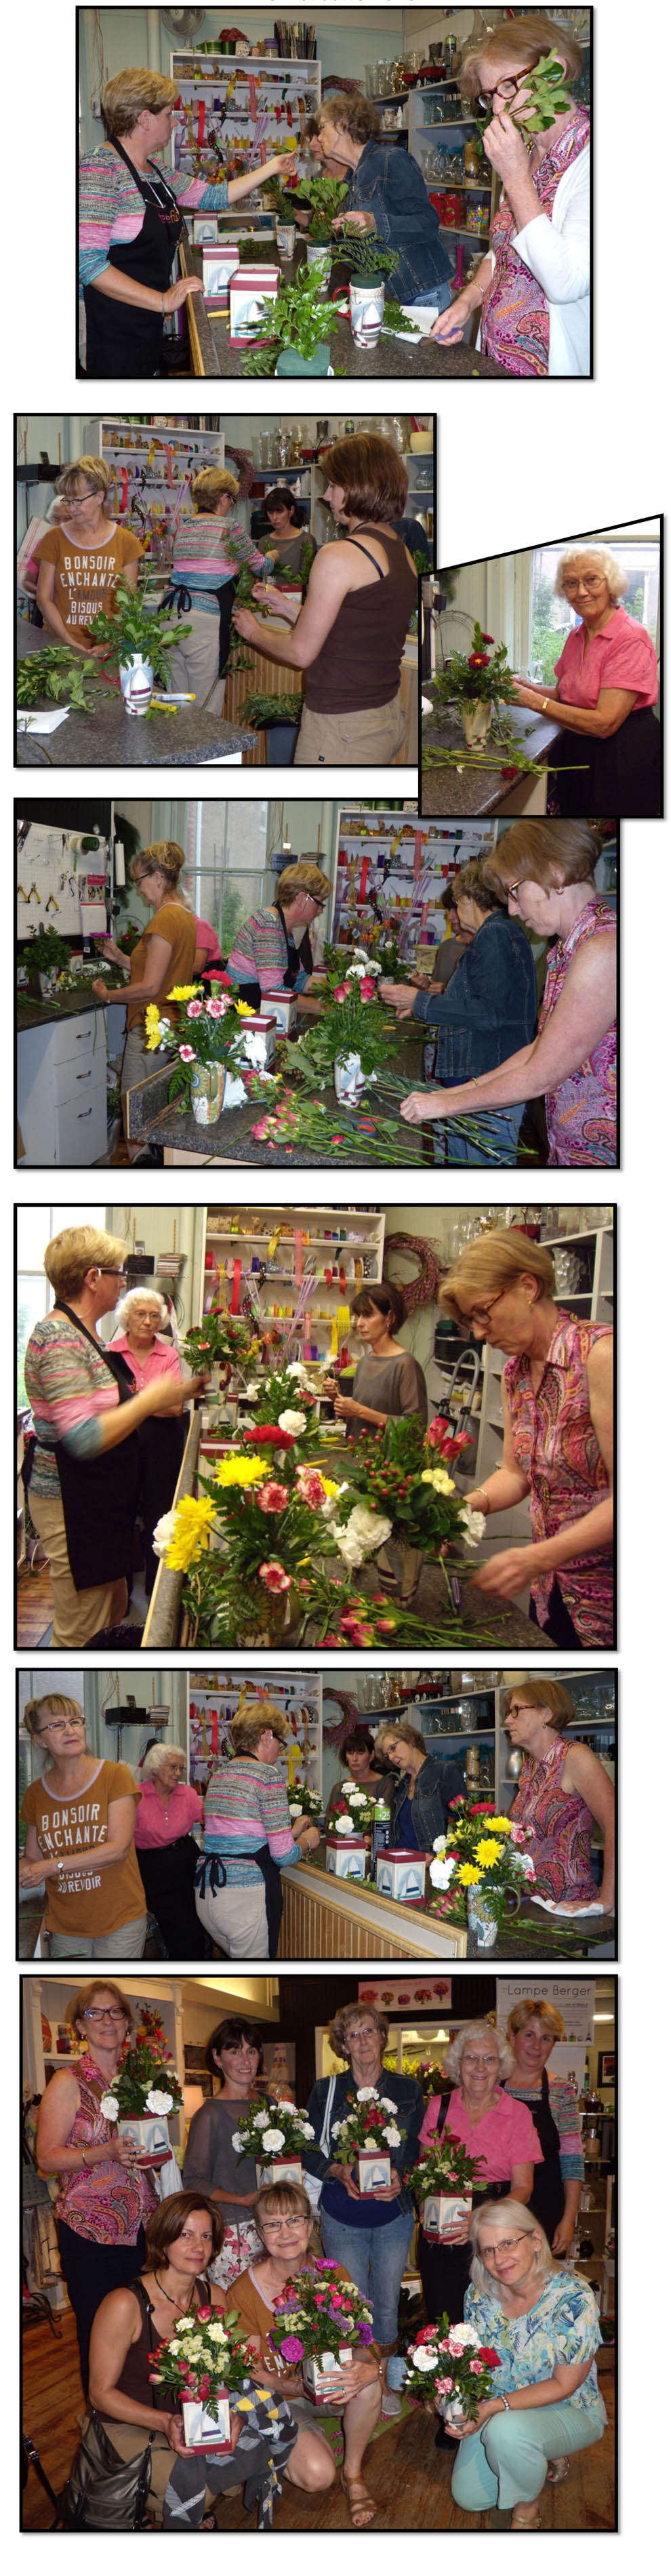 Uxbridge Horticultural Society Workshop at Keith's Flowers June 1515, 2015